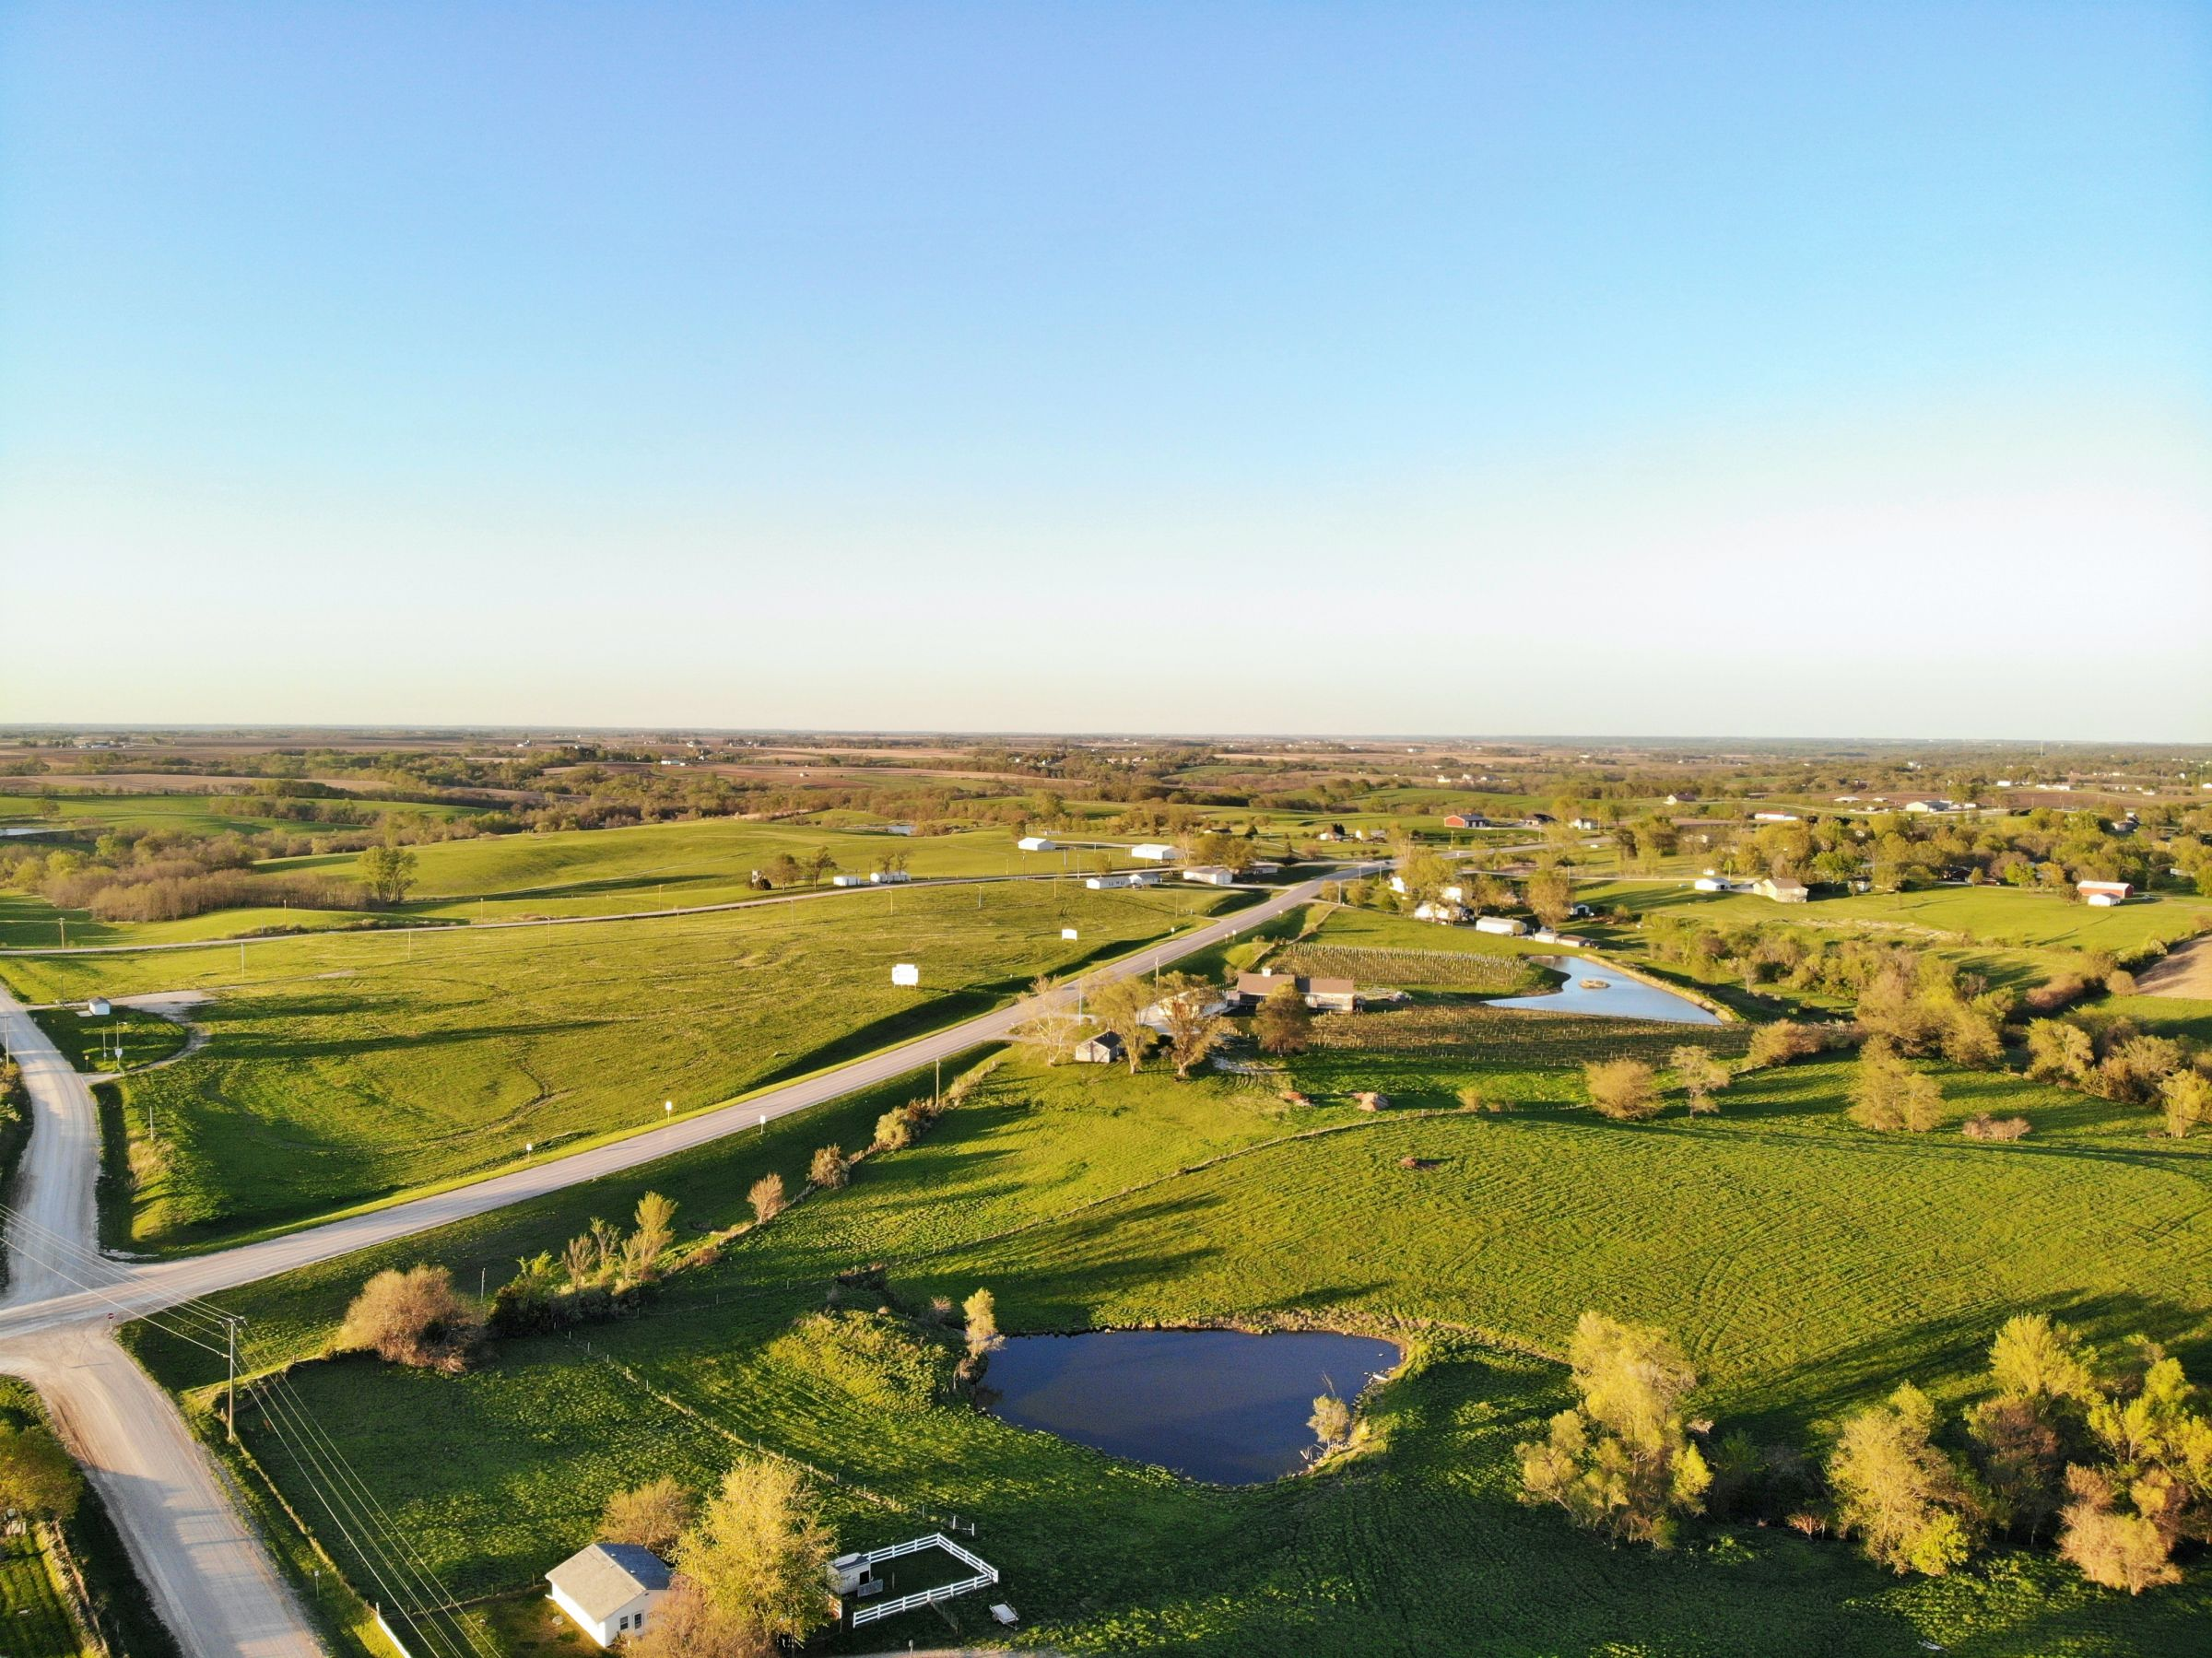 residential-land-commercial-warren-county-iowa-16-acres-listing-number-15510-3-2021-05-05-032839.jpg